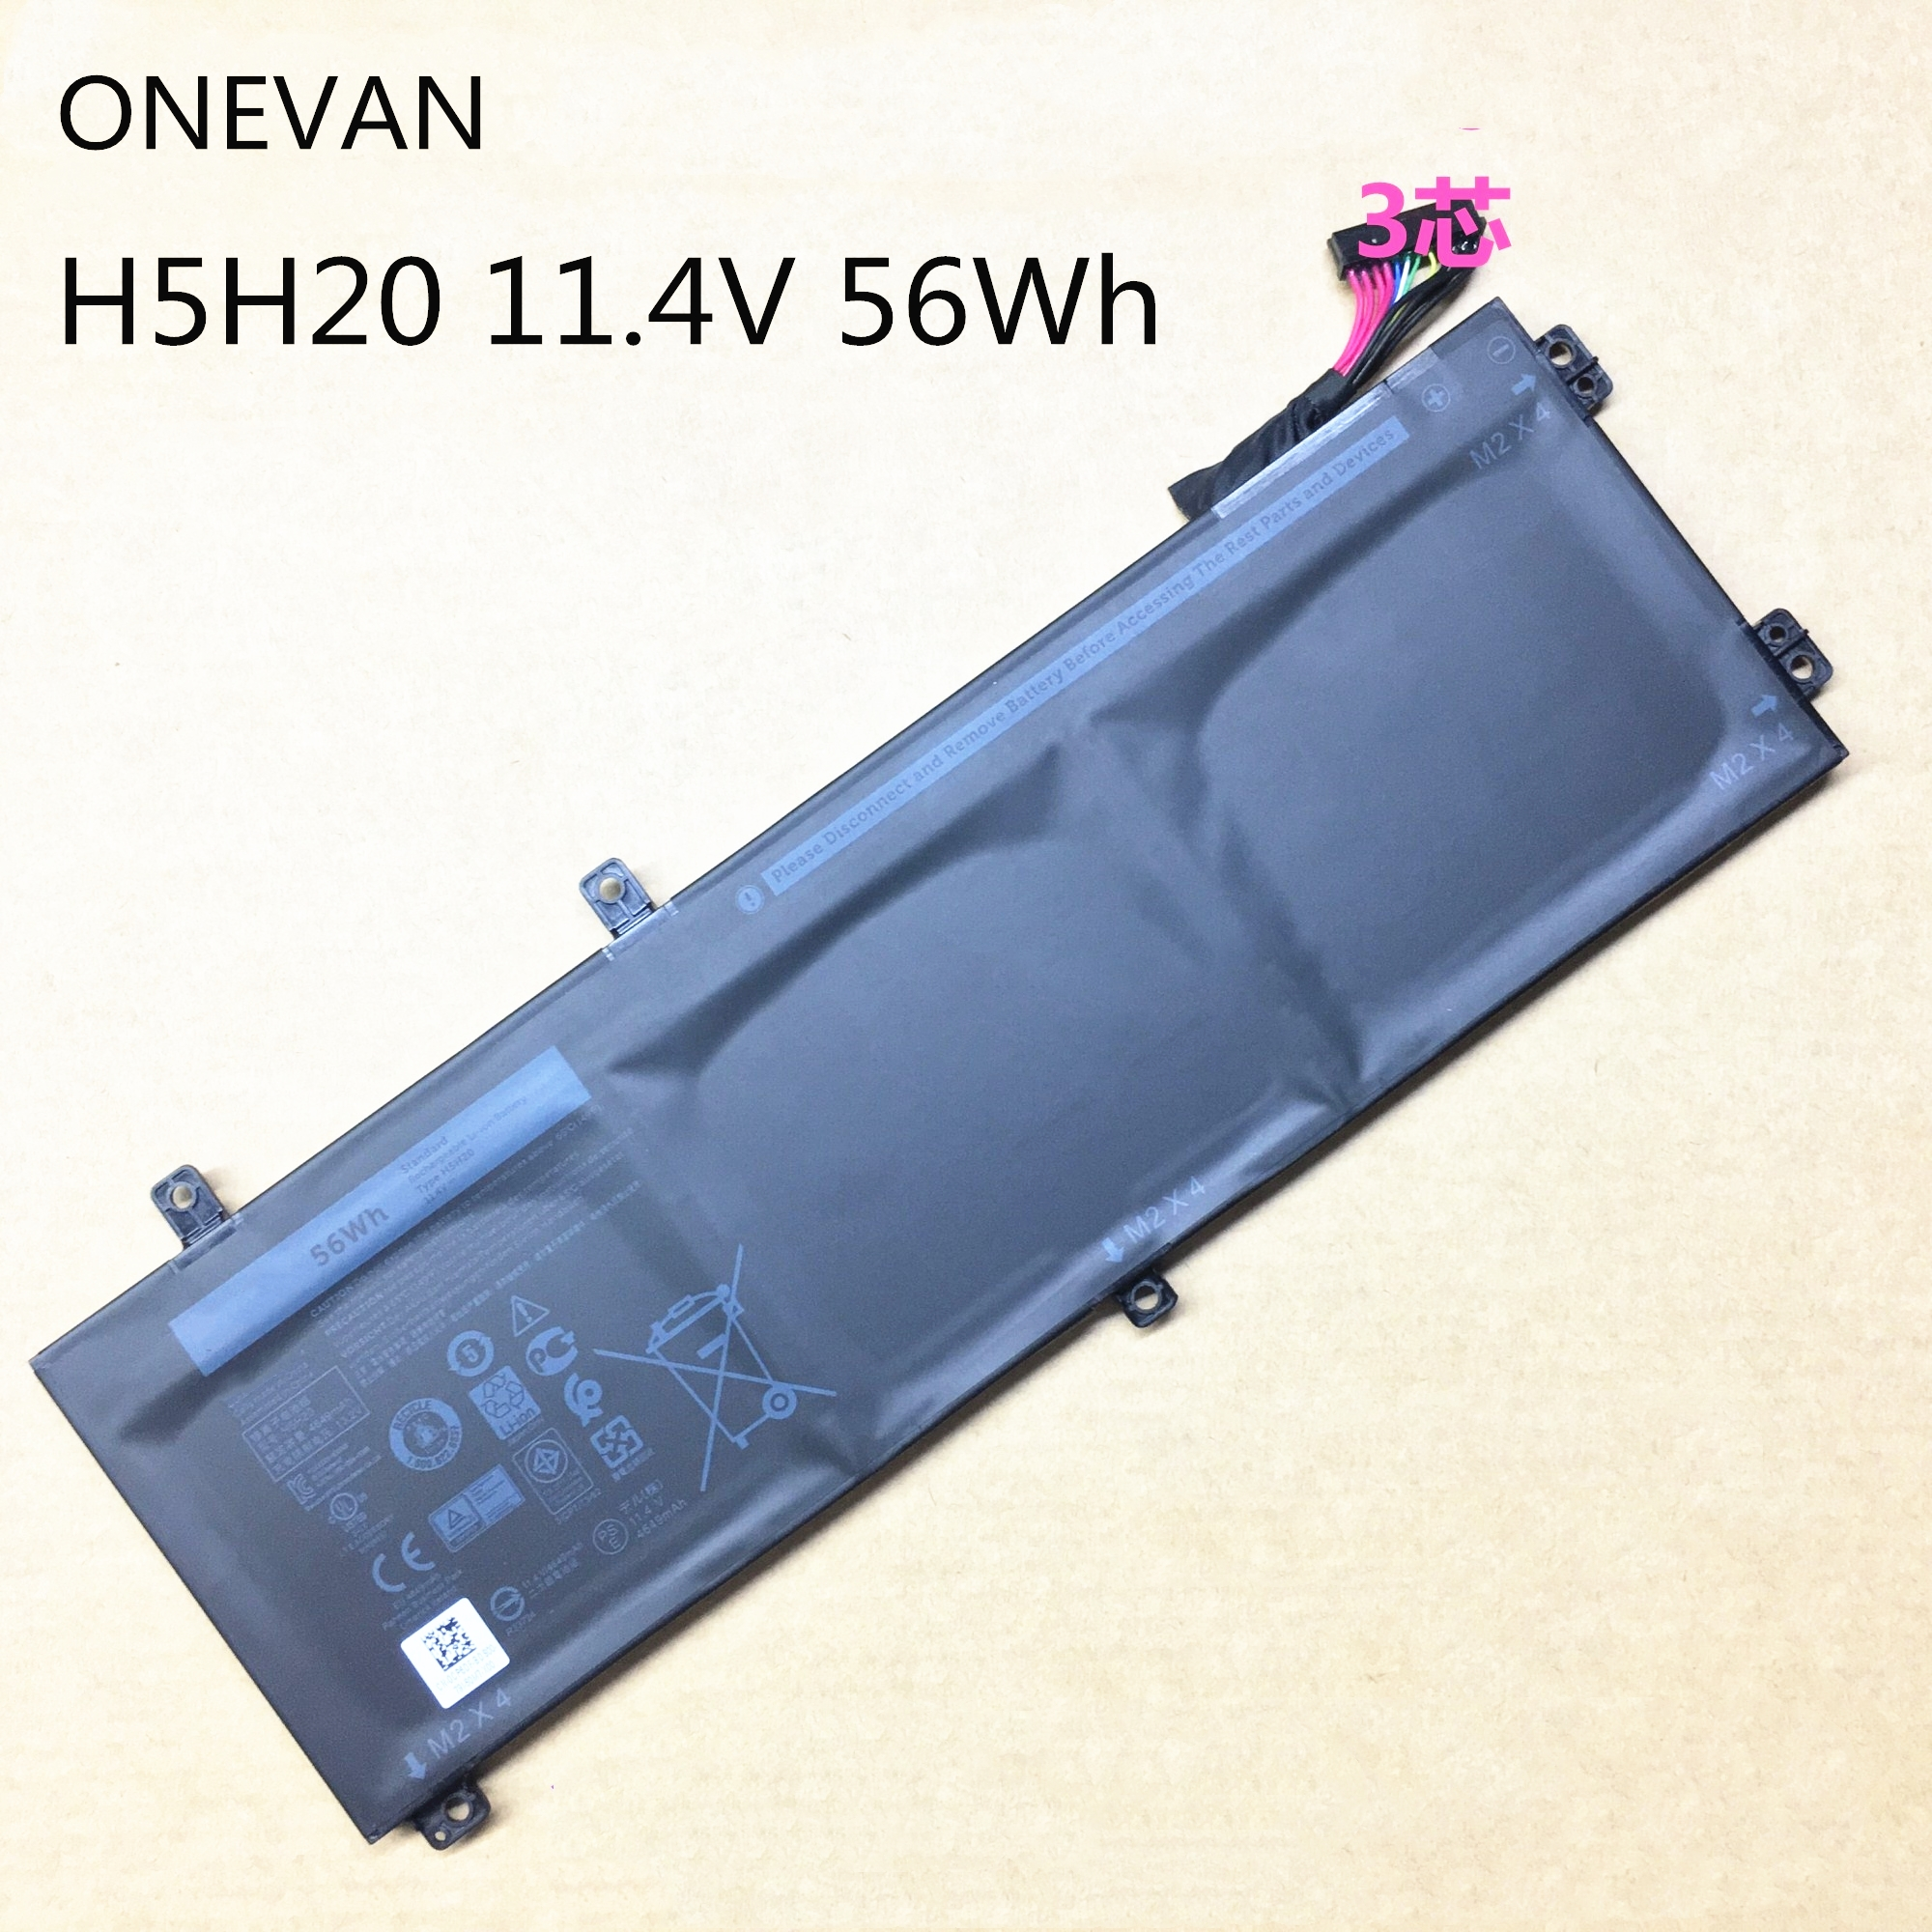 ONEVAN 11.1V 56Wh H5H20 New Laptop Battery For DELL XPS 15 M5510 5520 9550 9560 05041C 5D91C High Quality image